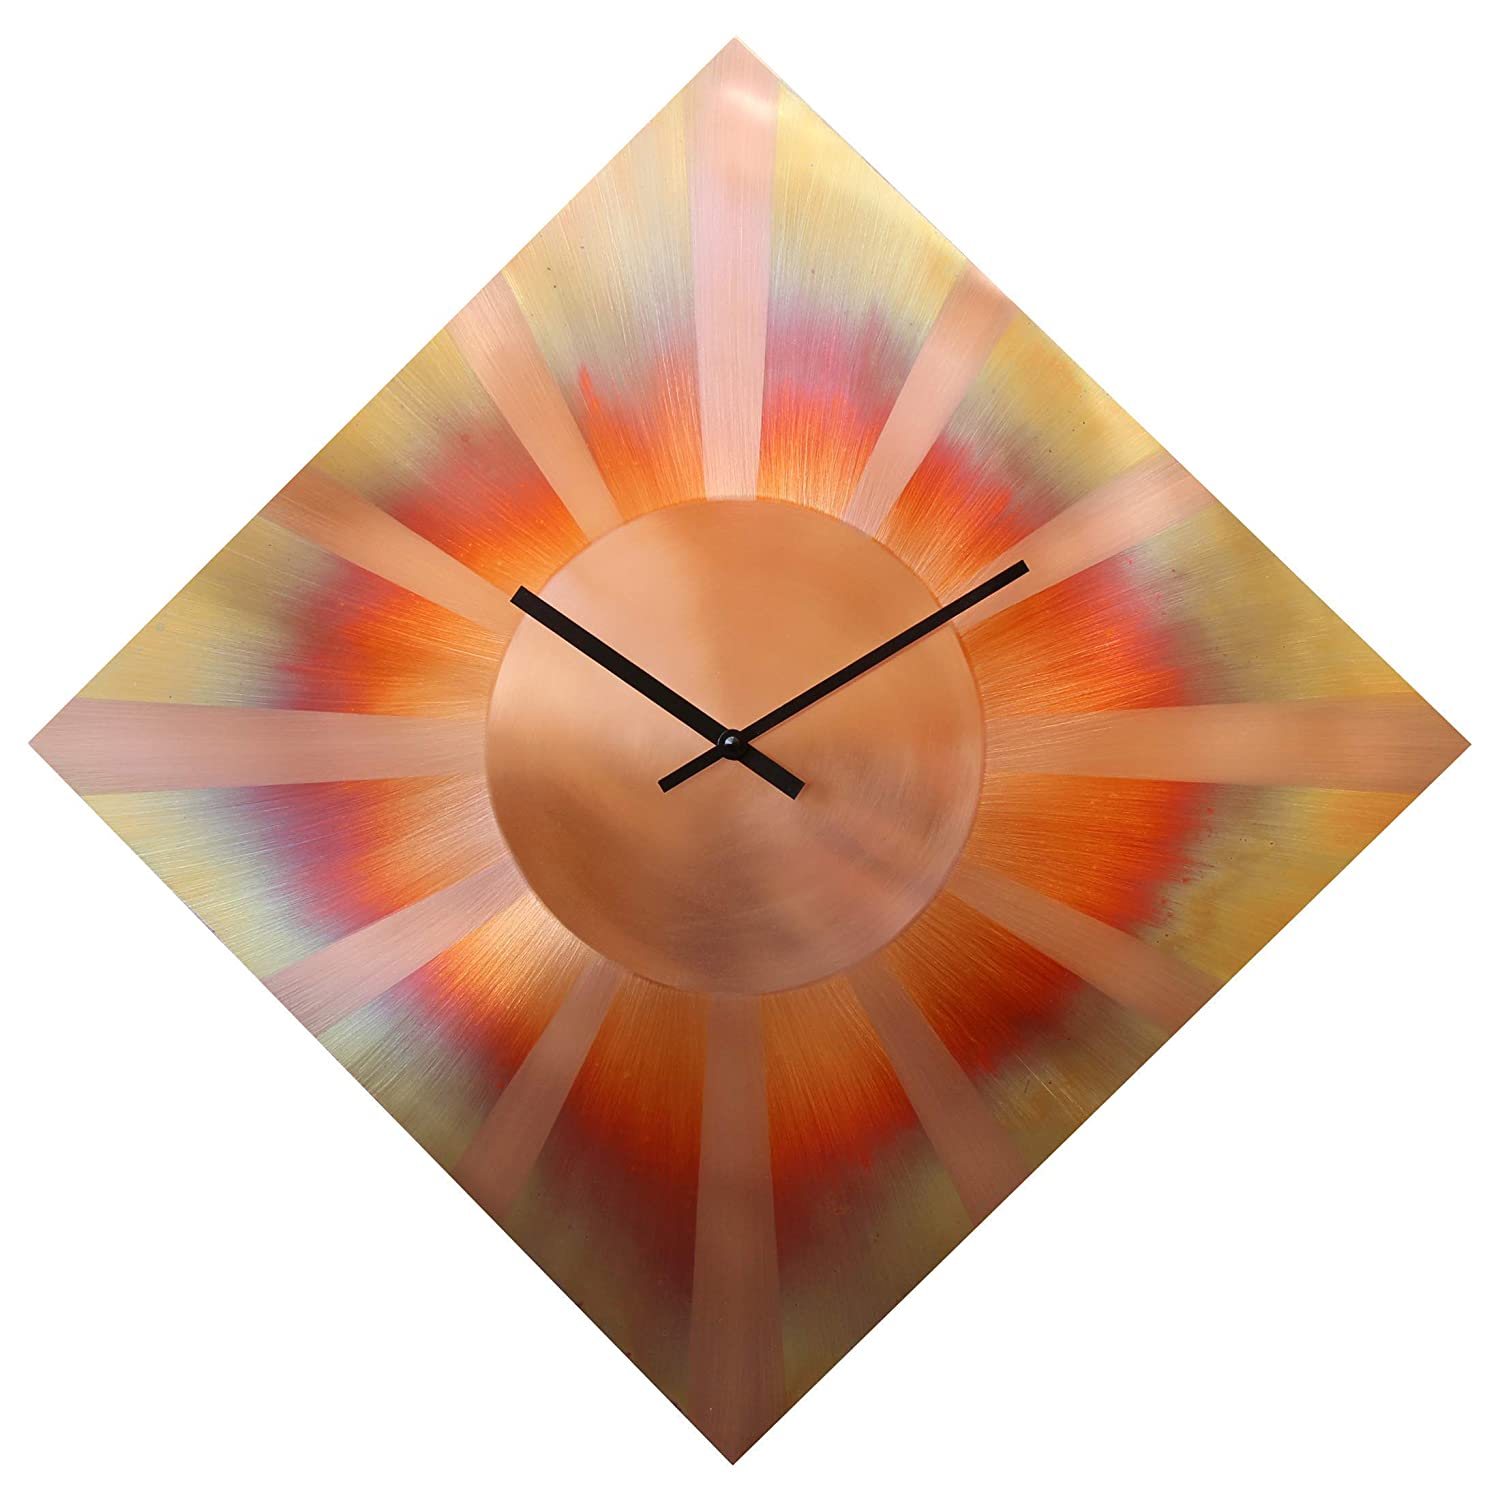 22-inch Diamond Copper Wall Clock - Art Decor 7th Anniversary Gift - for Home Office Kitchen Living Room